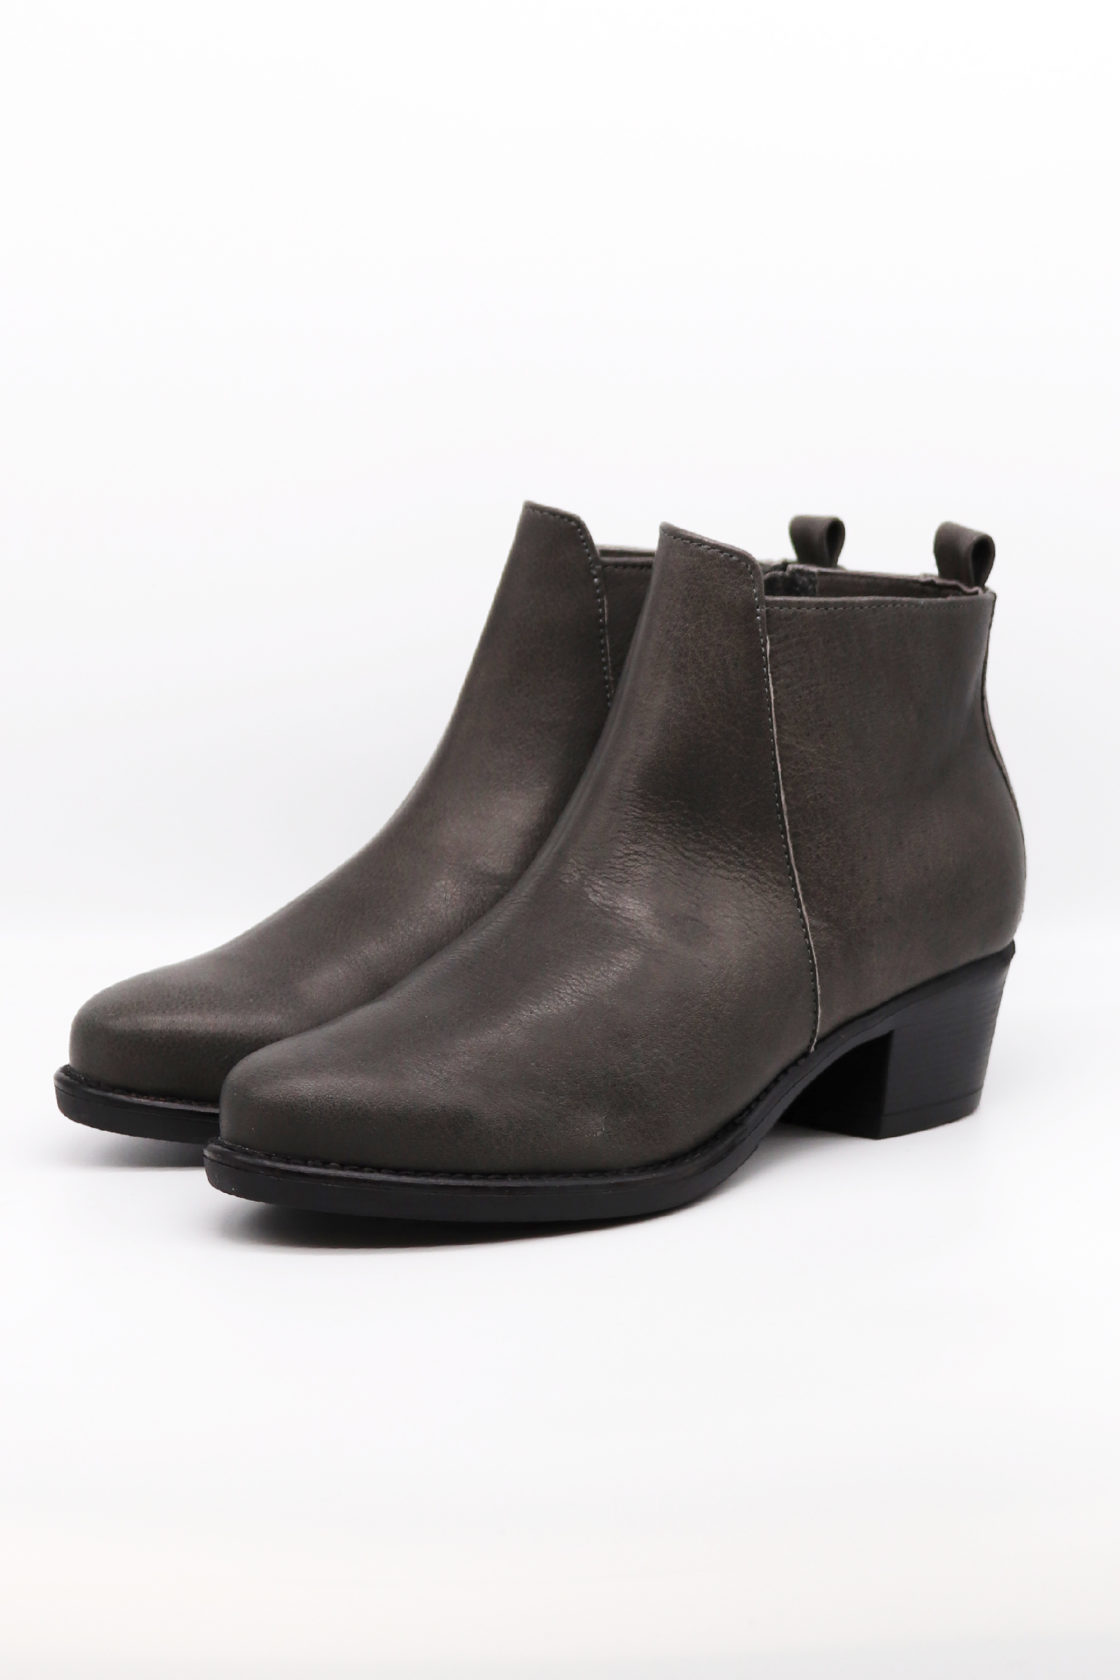 Roberta Organic Fashion Werner Ankle Boots Grey 5